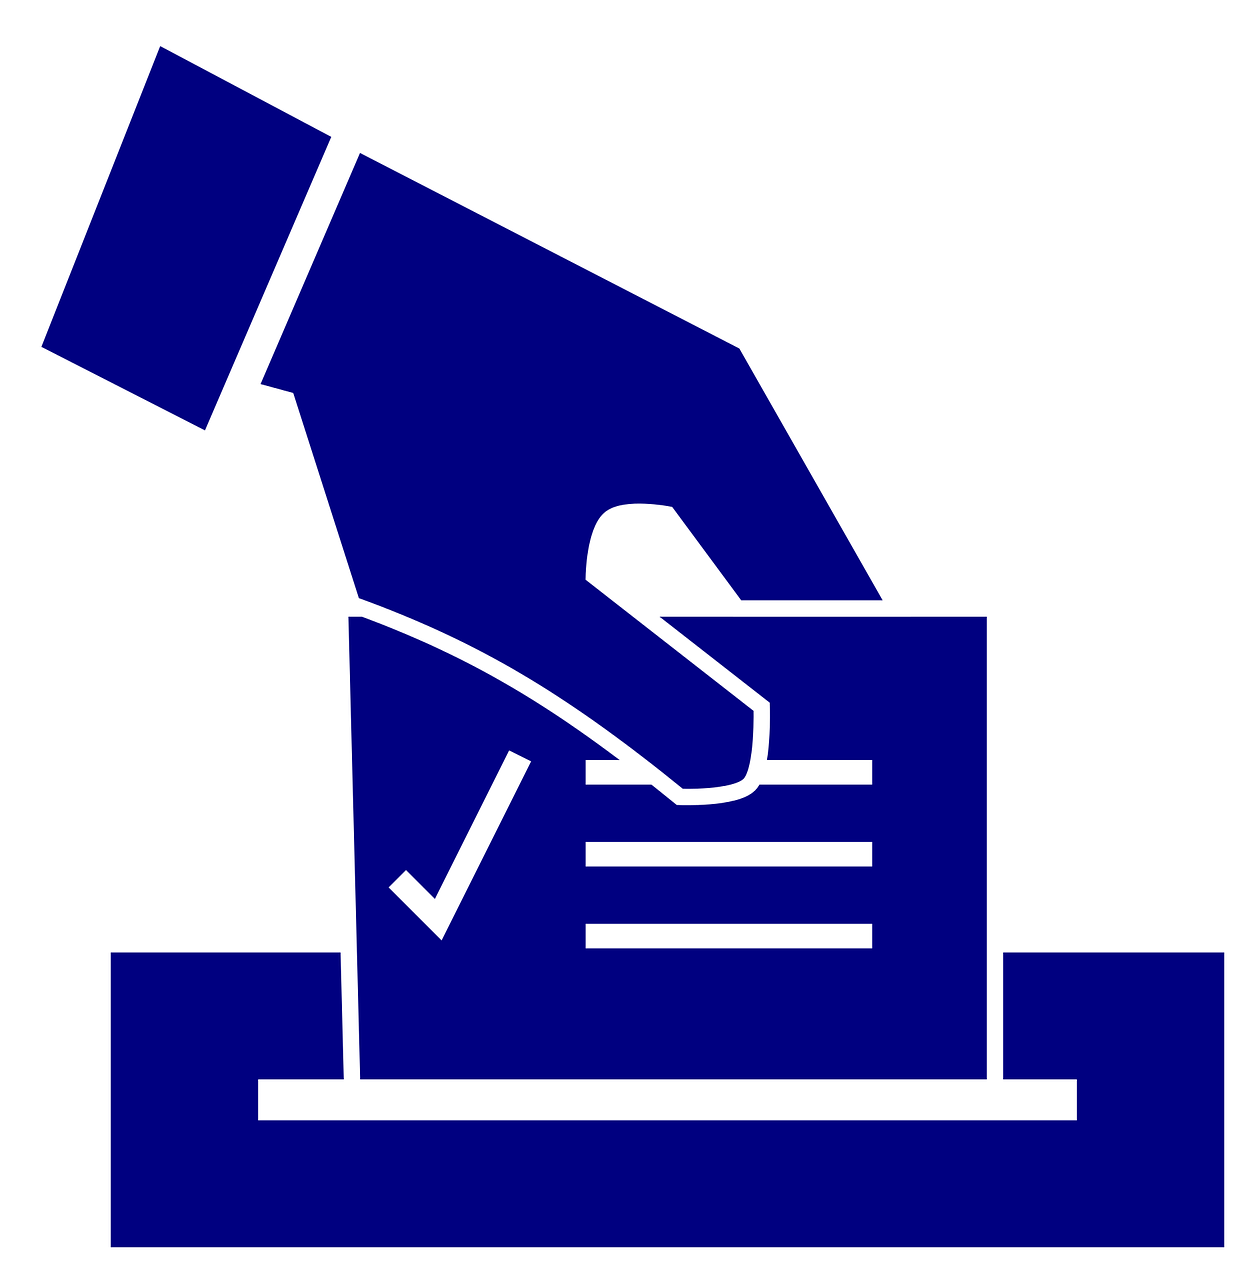 Illustration of a ballot box